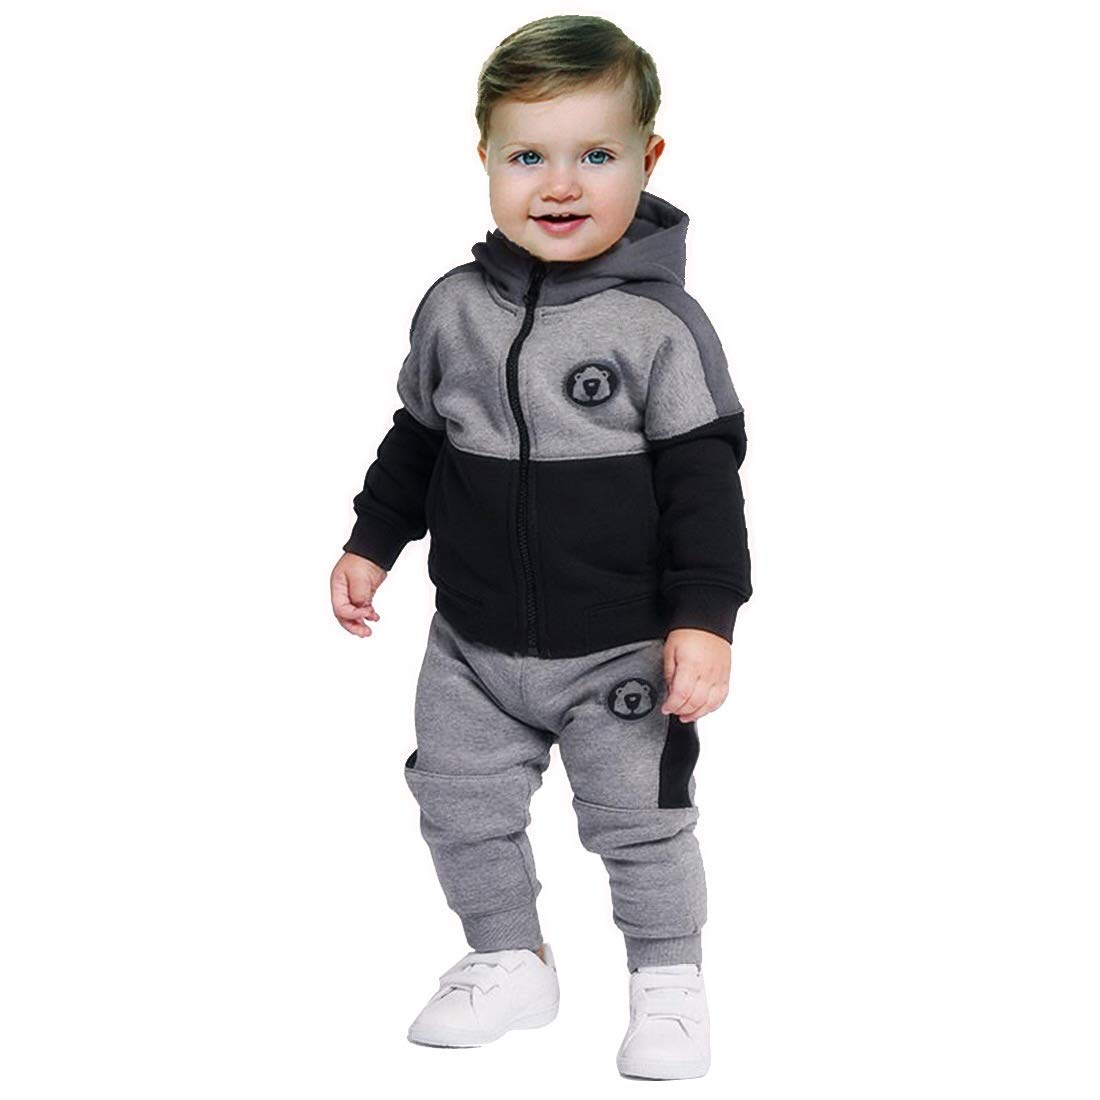 Baby Boy Clothes Funny Letter Printed Tops Leggings Pants Outfits Set for Toddler,Grey and Black (4T)